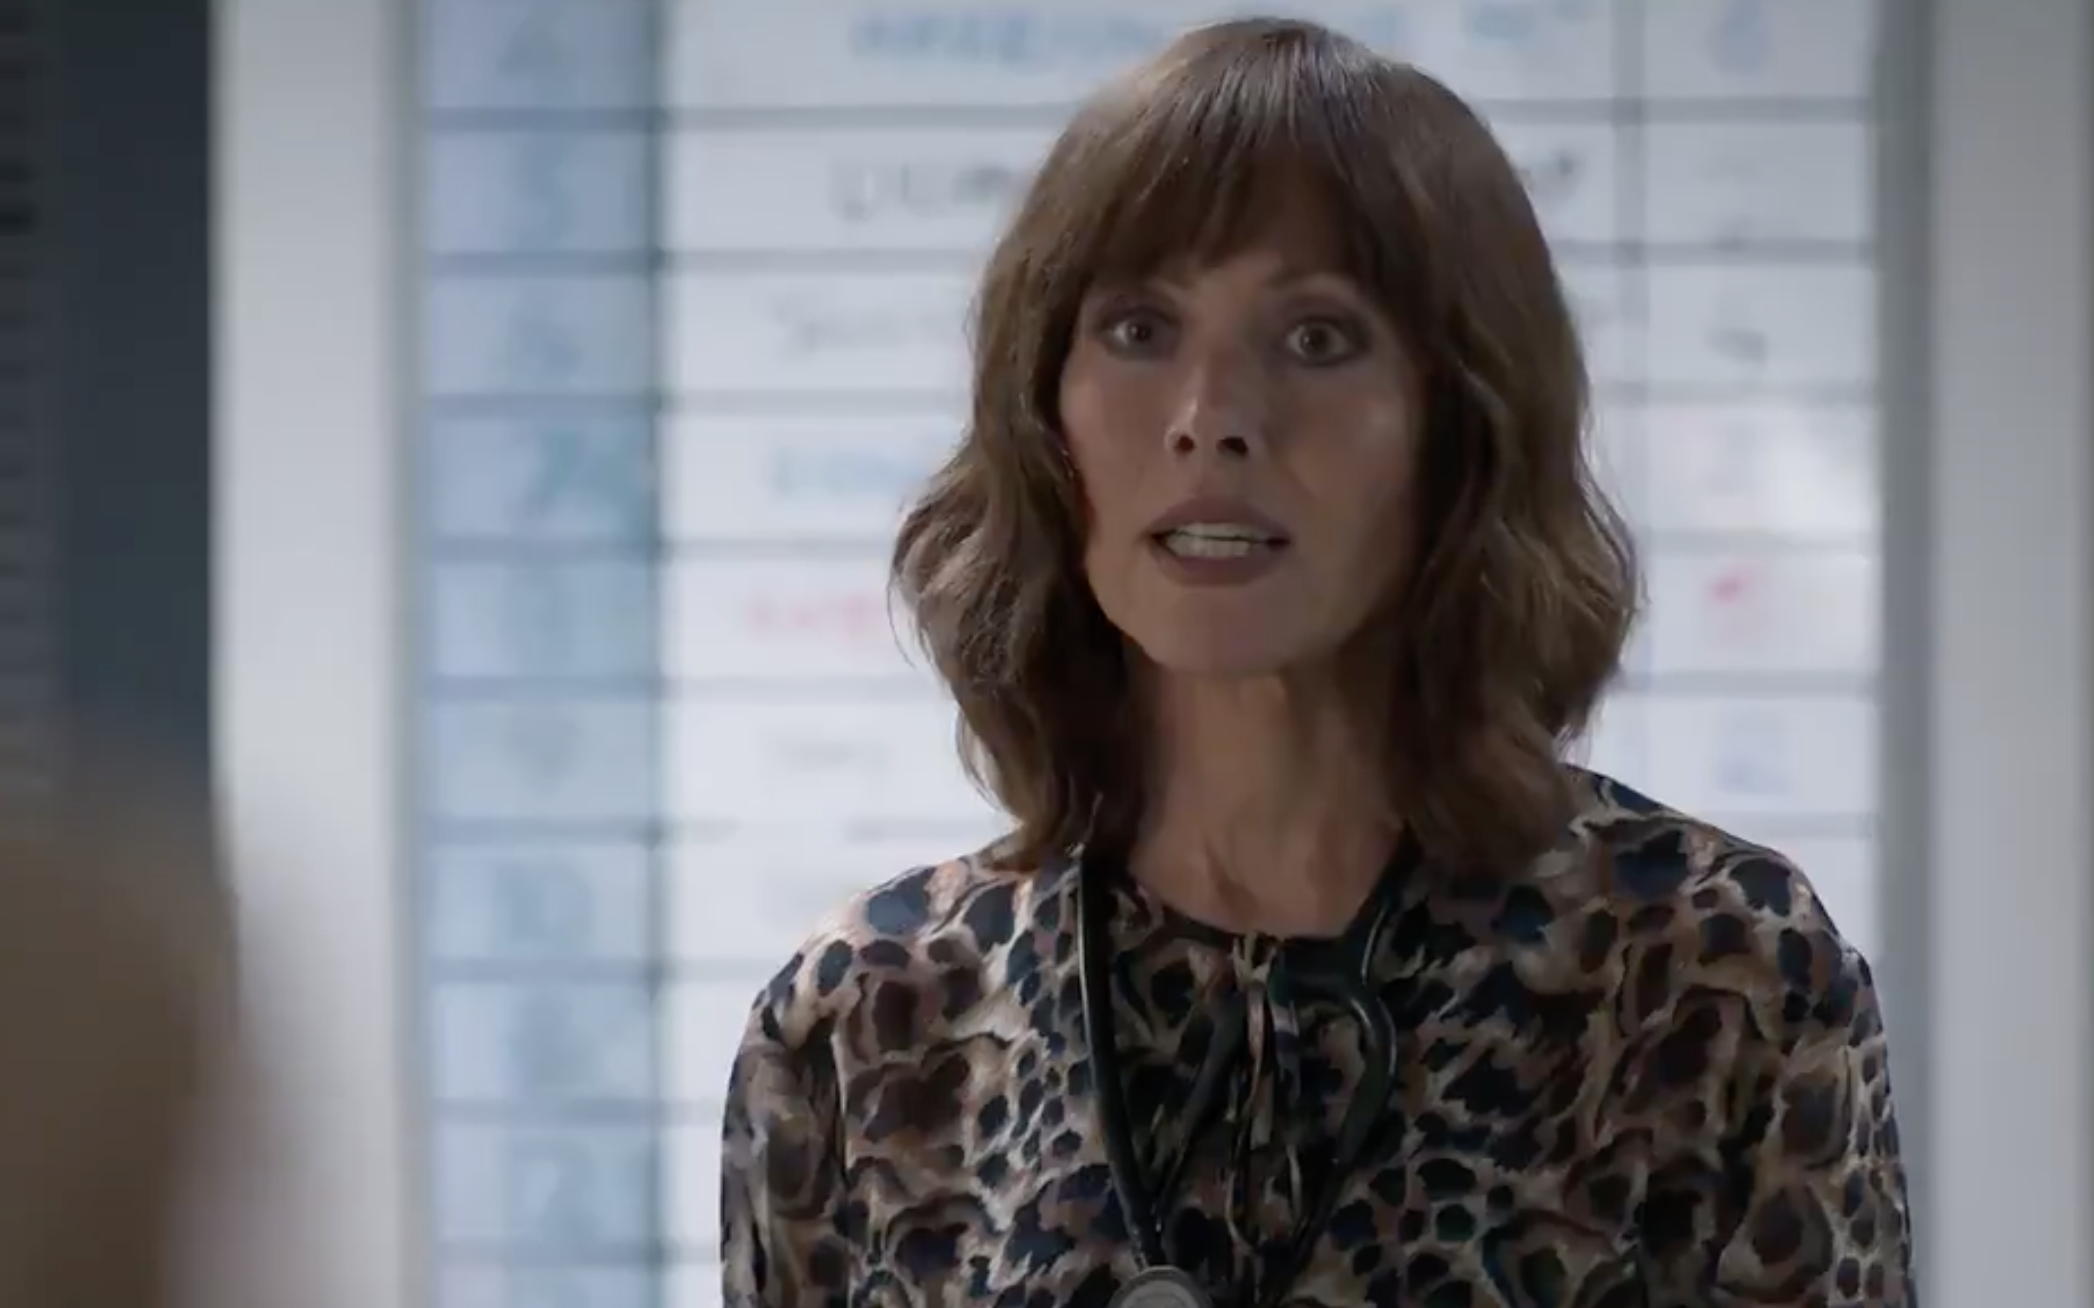 Casualty teases Connie Beauchamp's return in new winter trailer